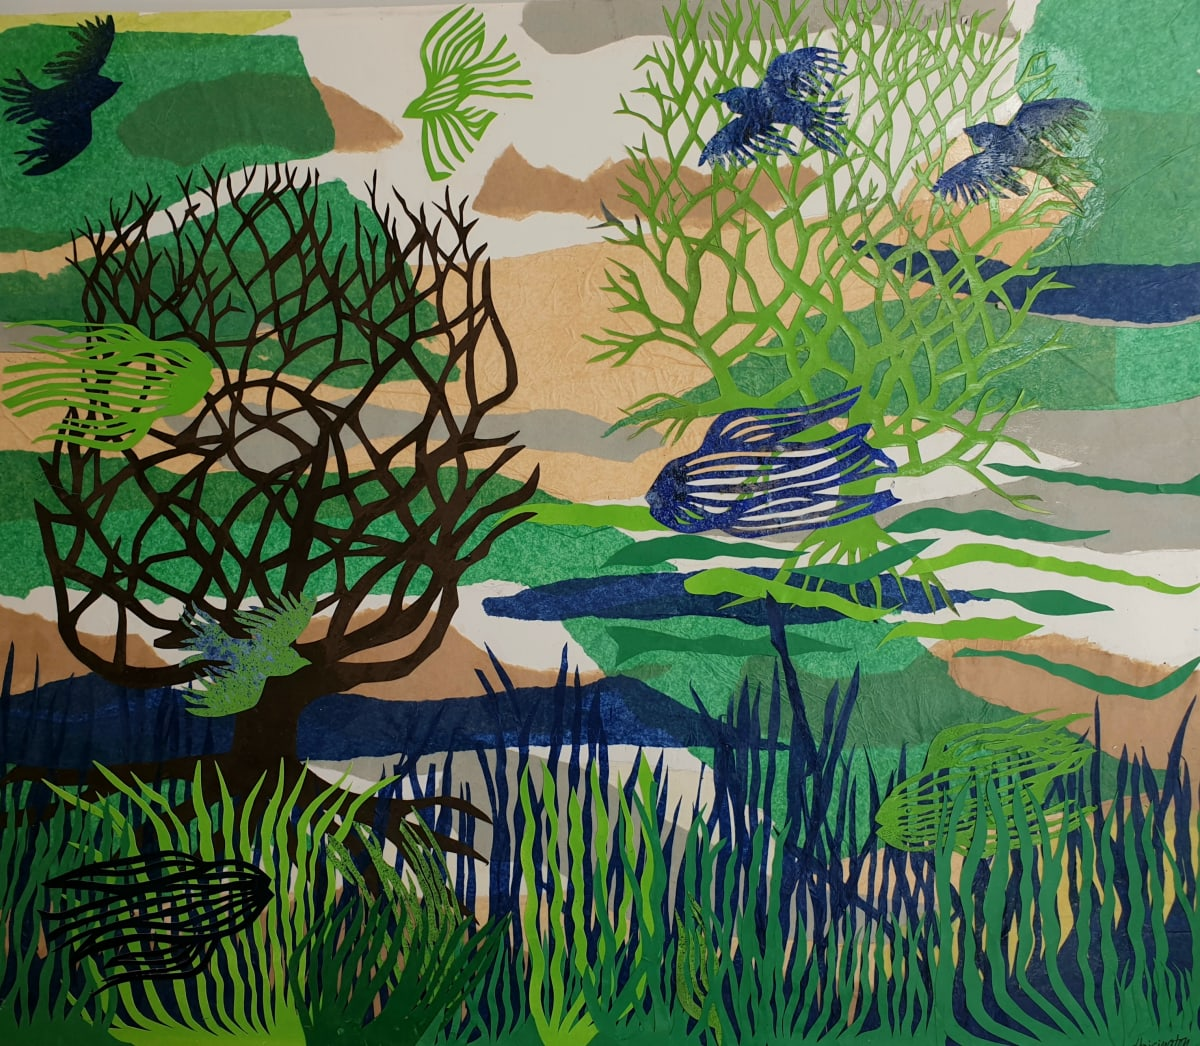 Seagrasses and Meadows by Kit Hoisington